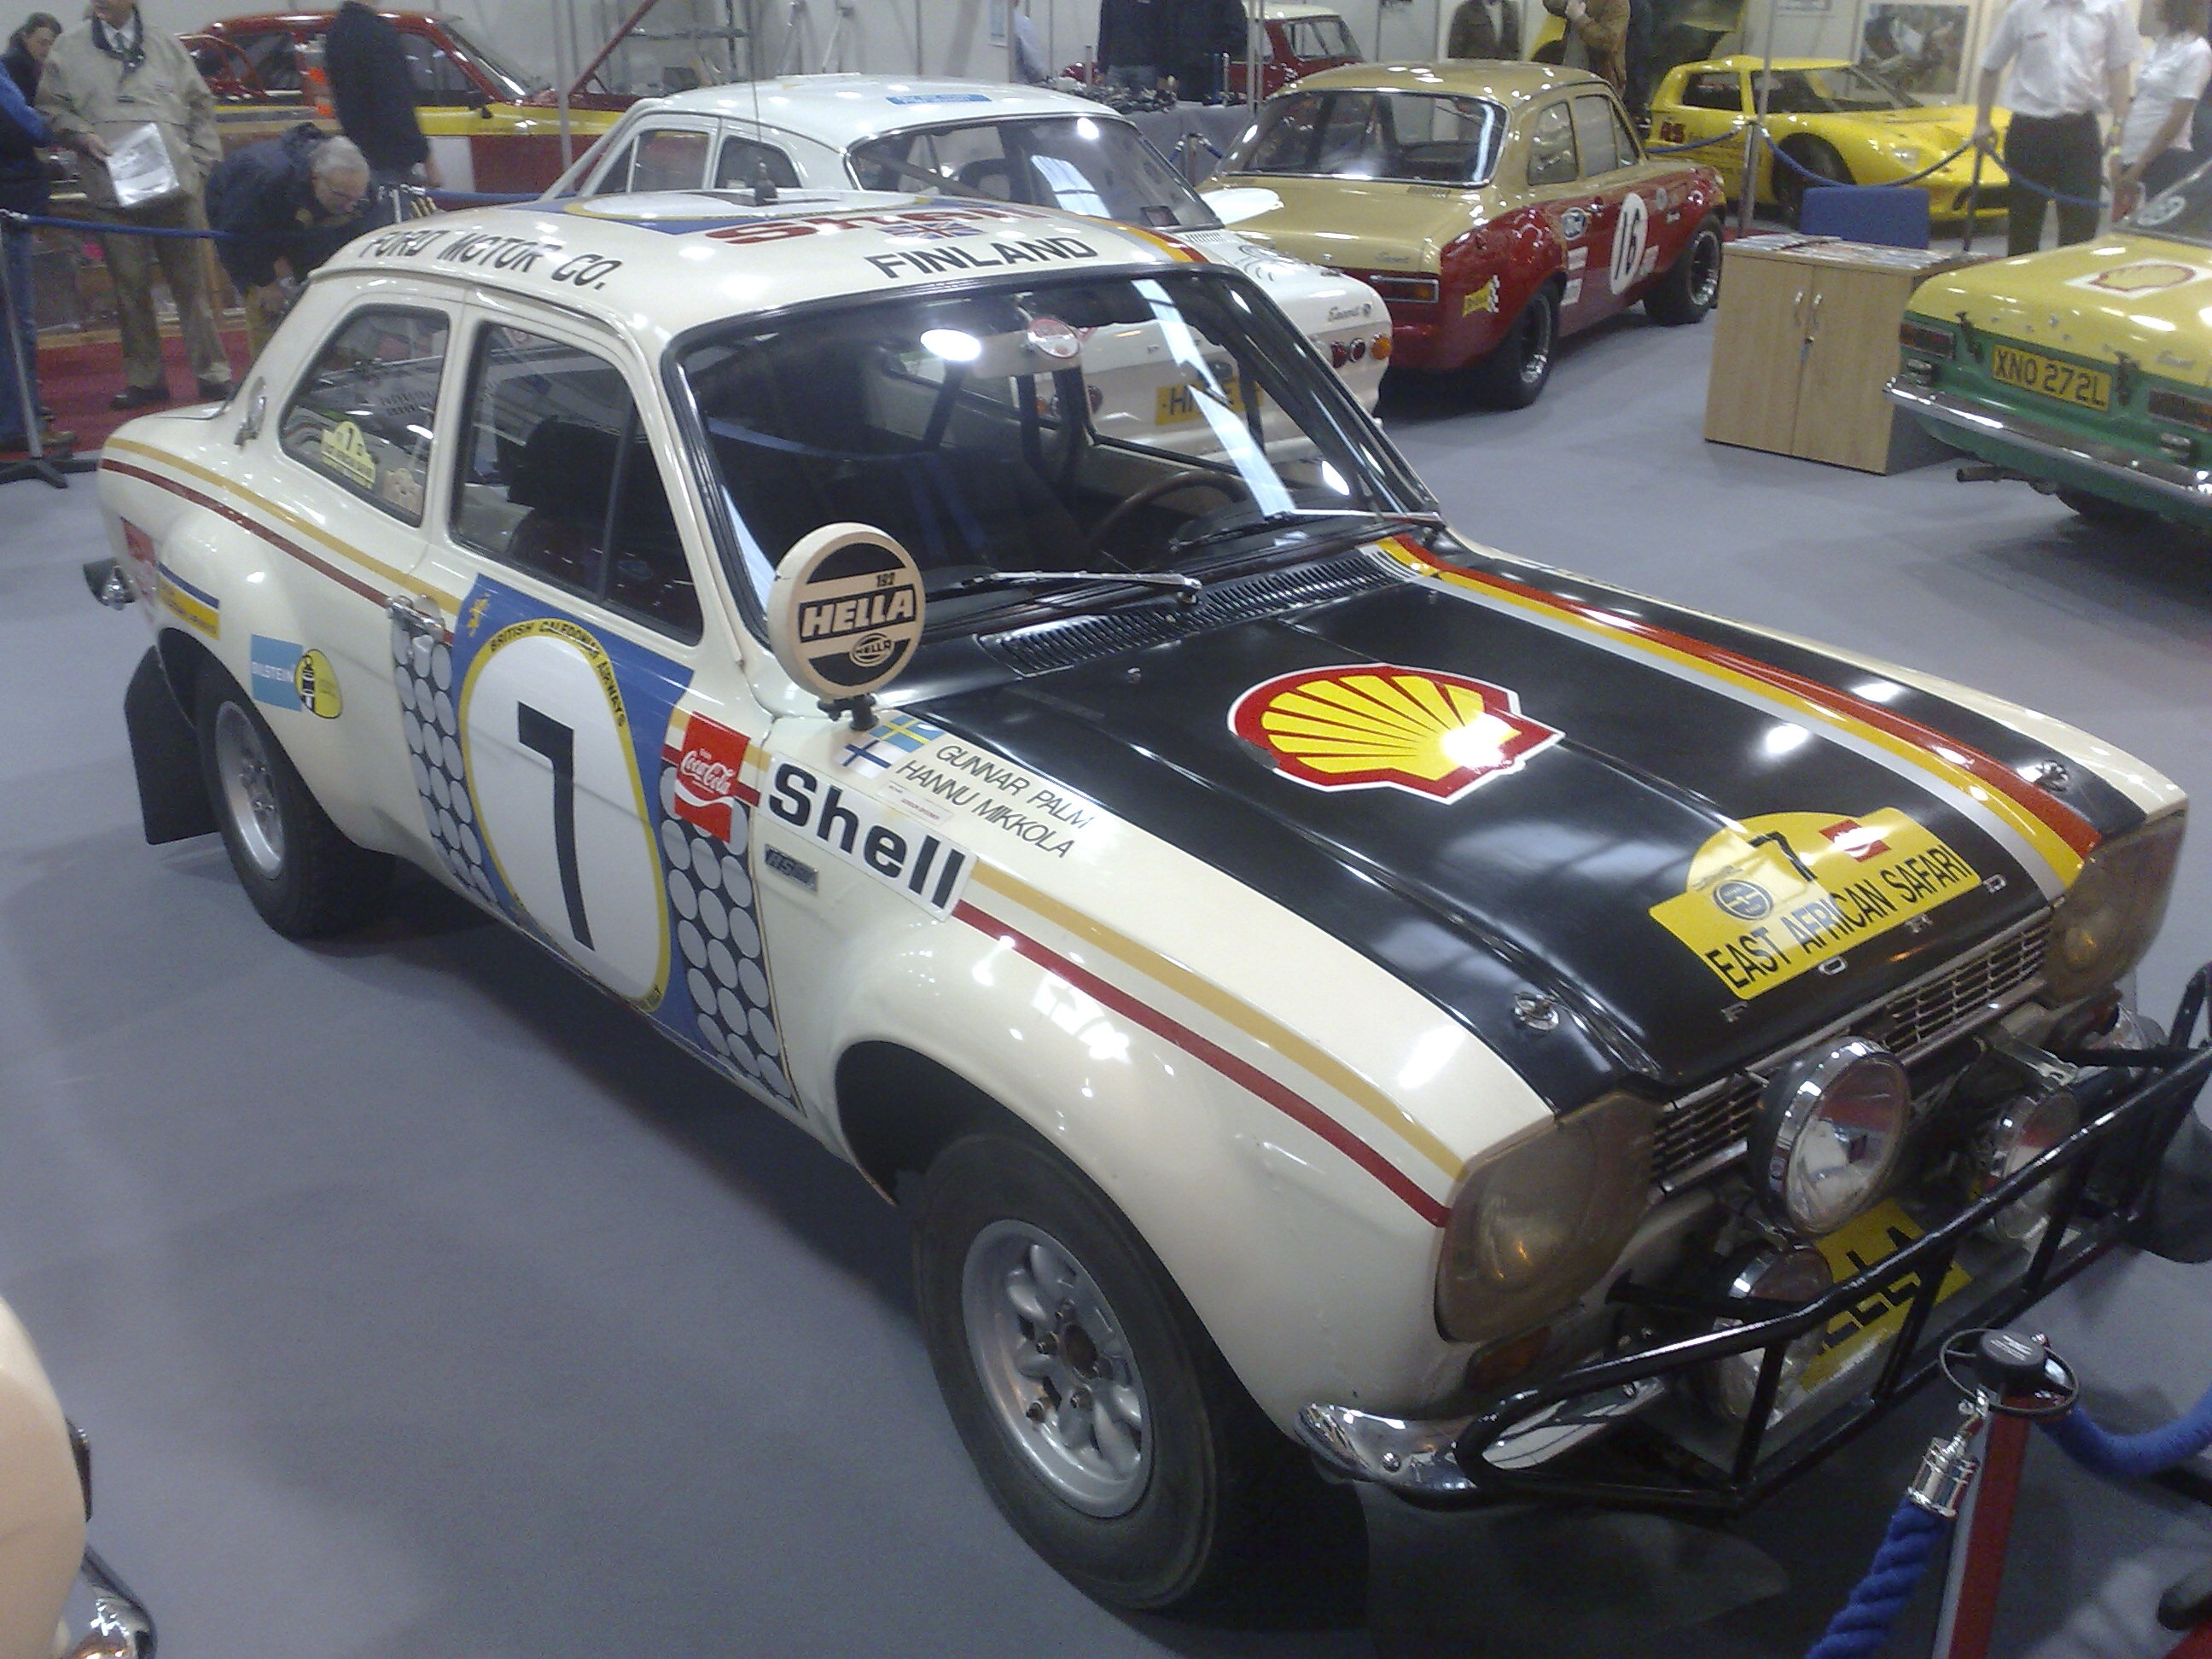 File:Hannu Mikkola's Ford Escort RS1600, winner of the ...